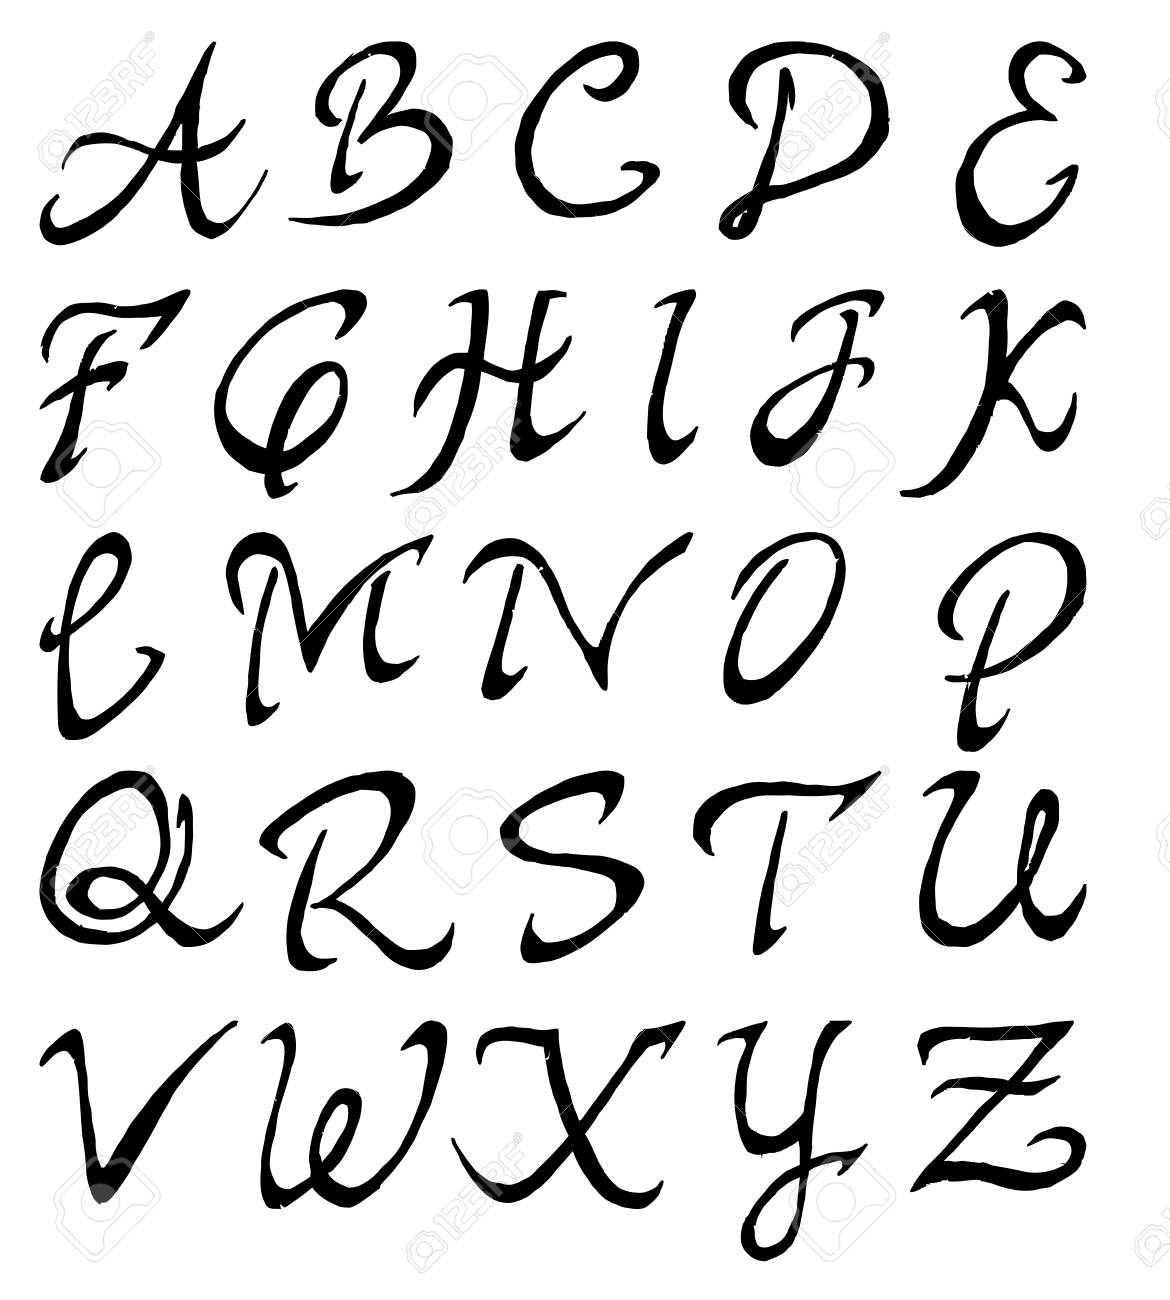 Black Fonts Hand Made Tracing From Sketch Vector Illustration